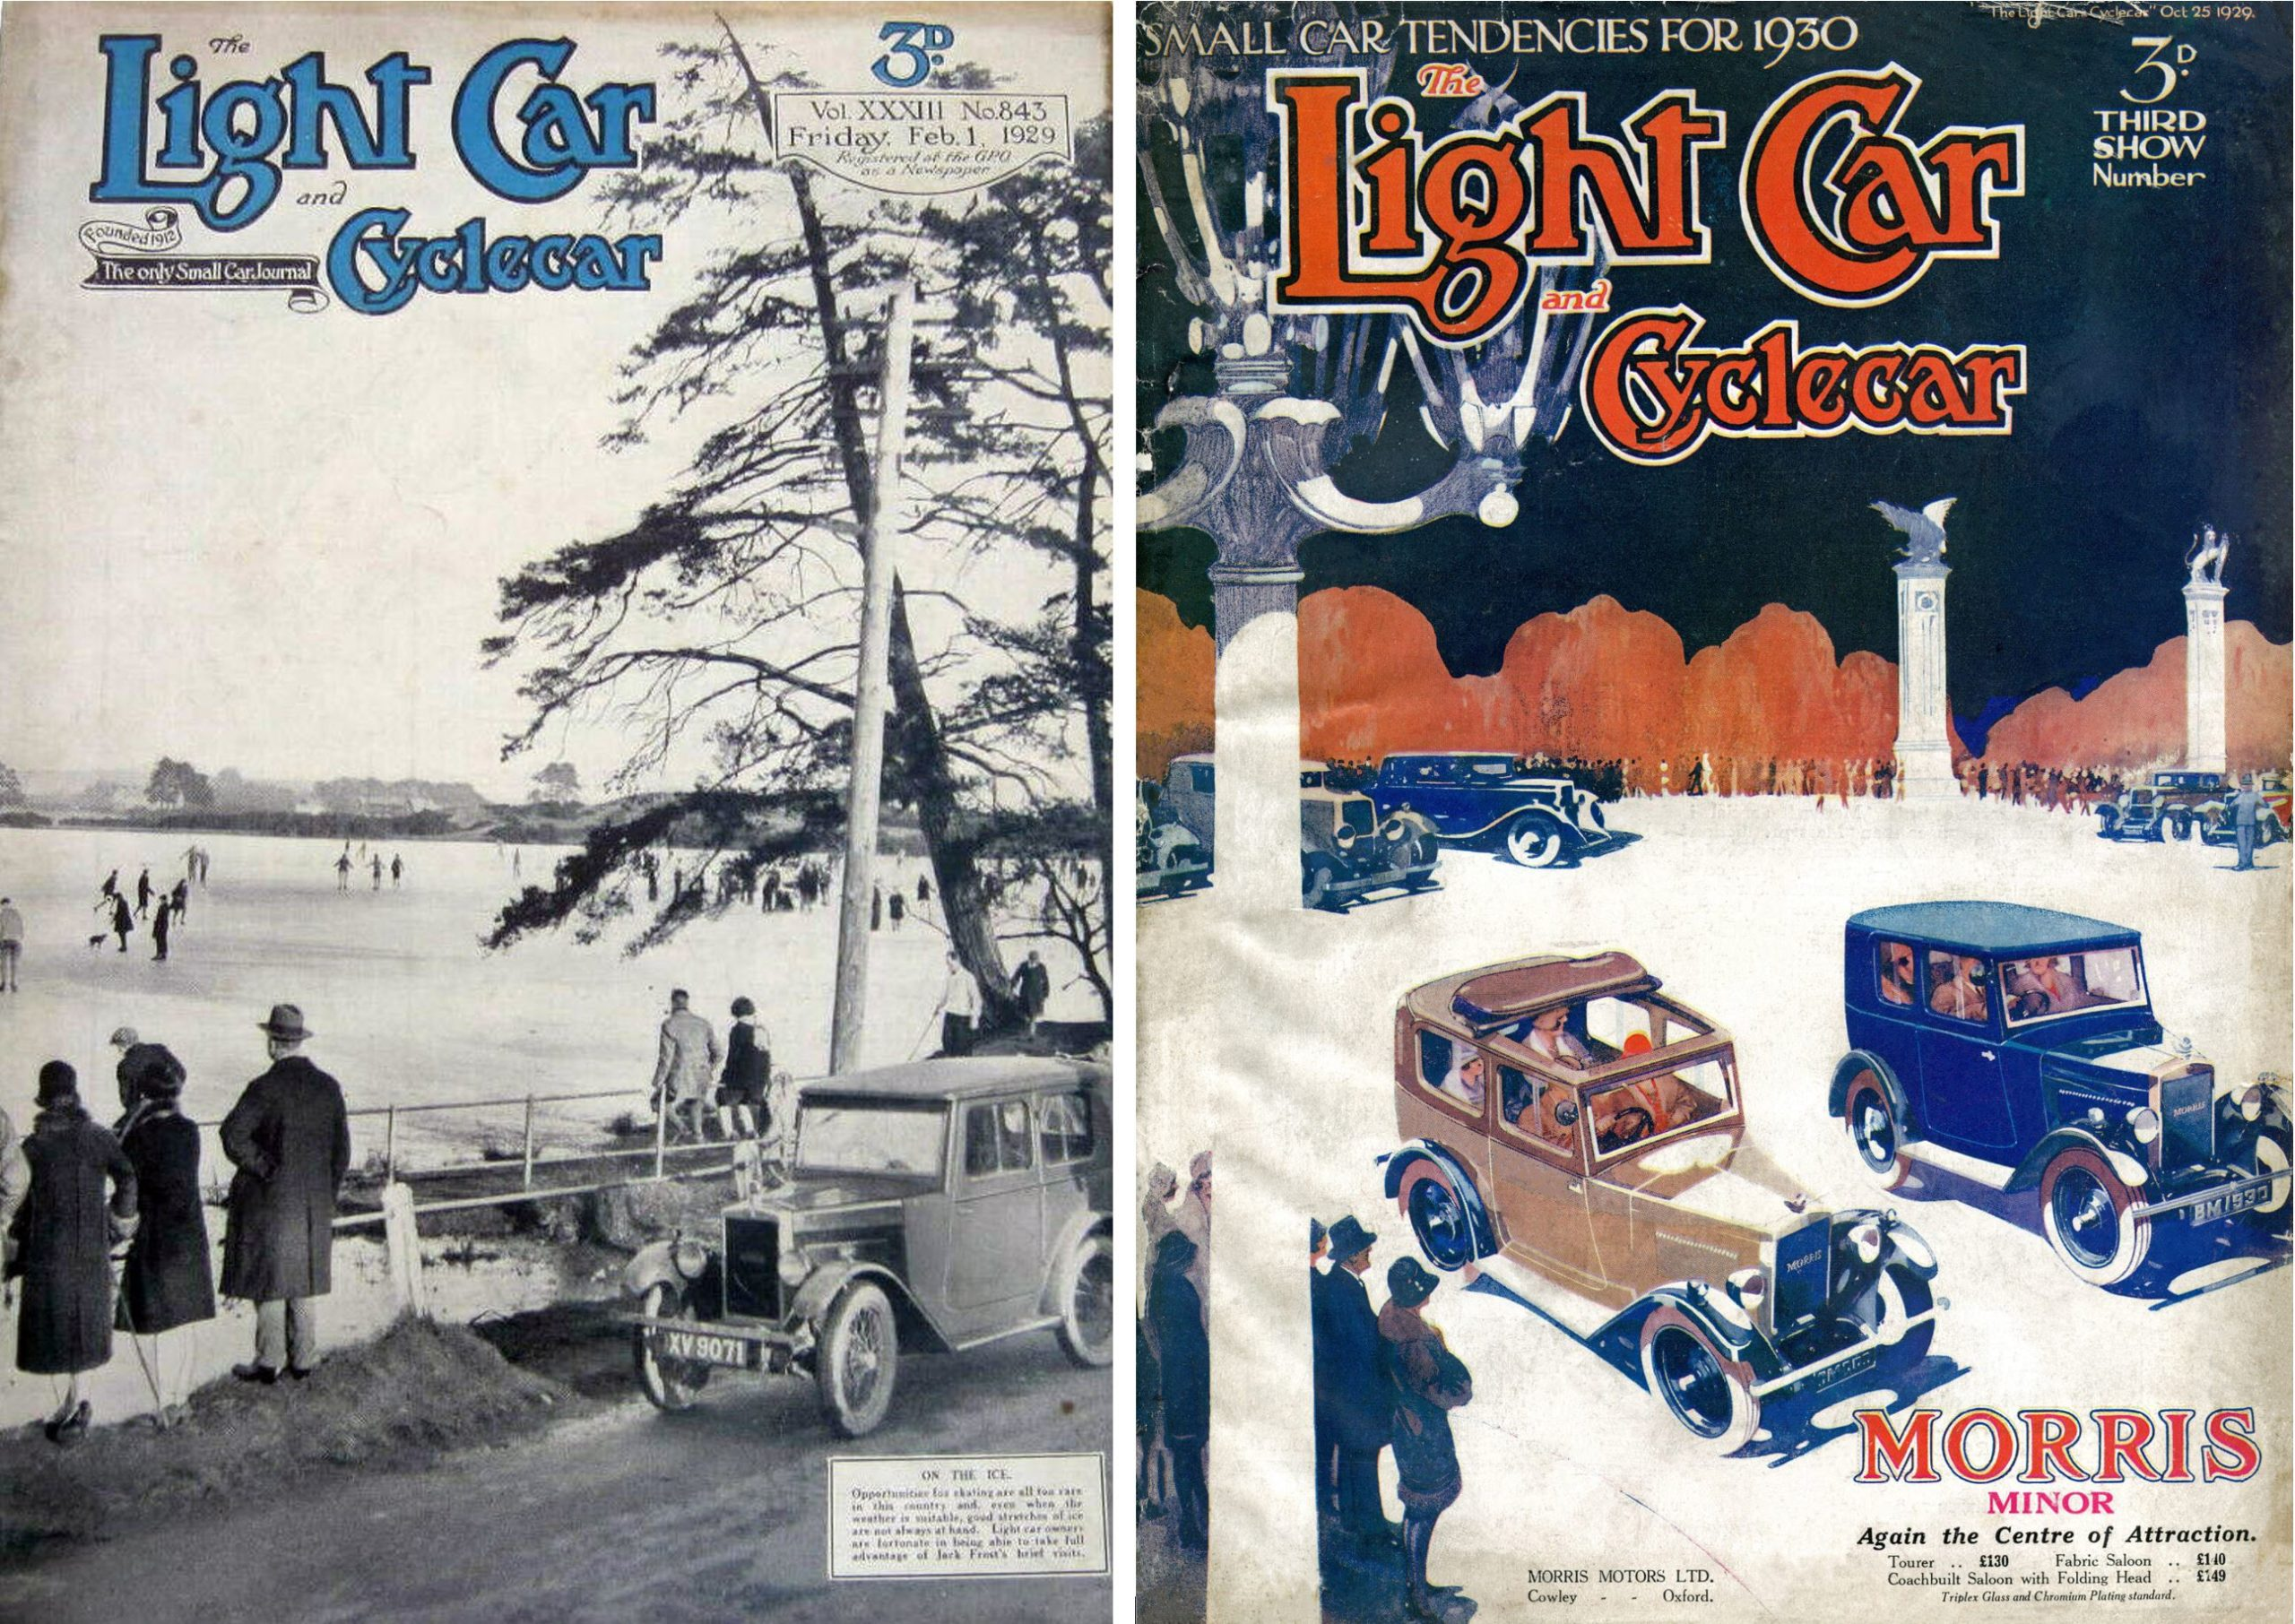 Light Car covers 1929